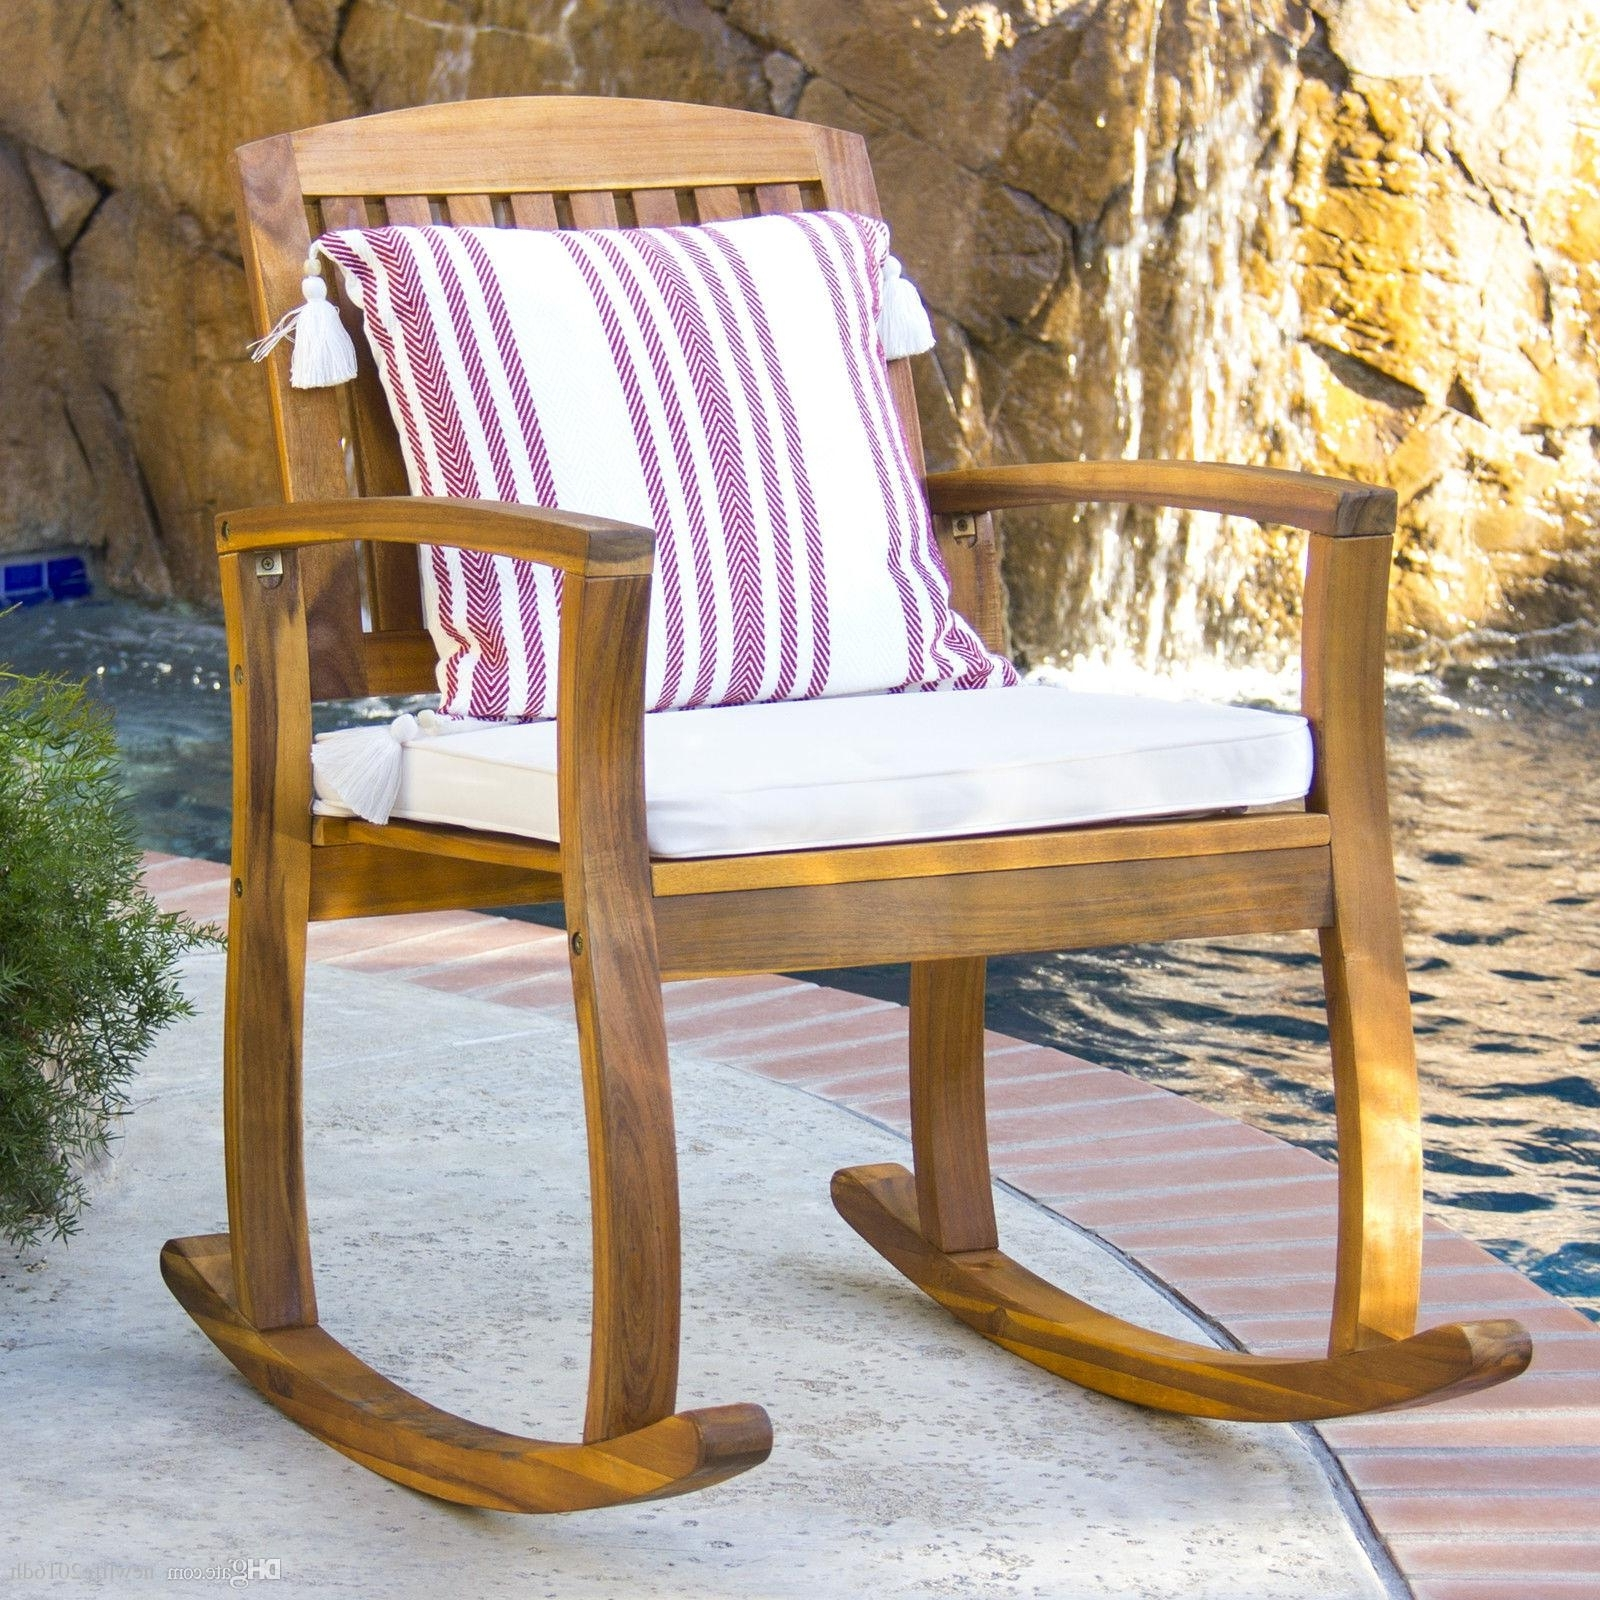 Preferred 2018 Outdoor Patio Acacia Wood Rocking Chair W/ Removable Seat In Patio Wooden Rocking Chairs (View 16 of 20)